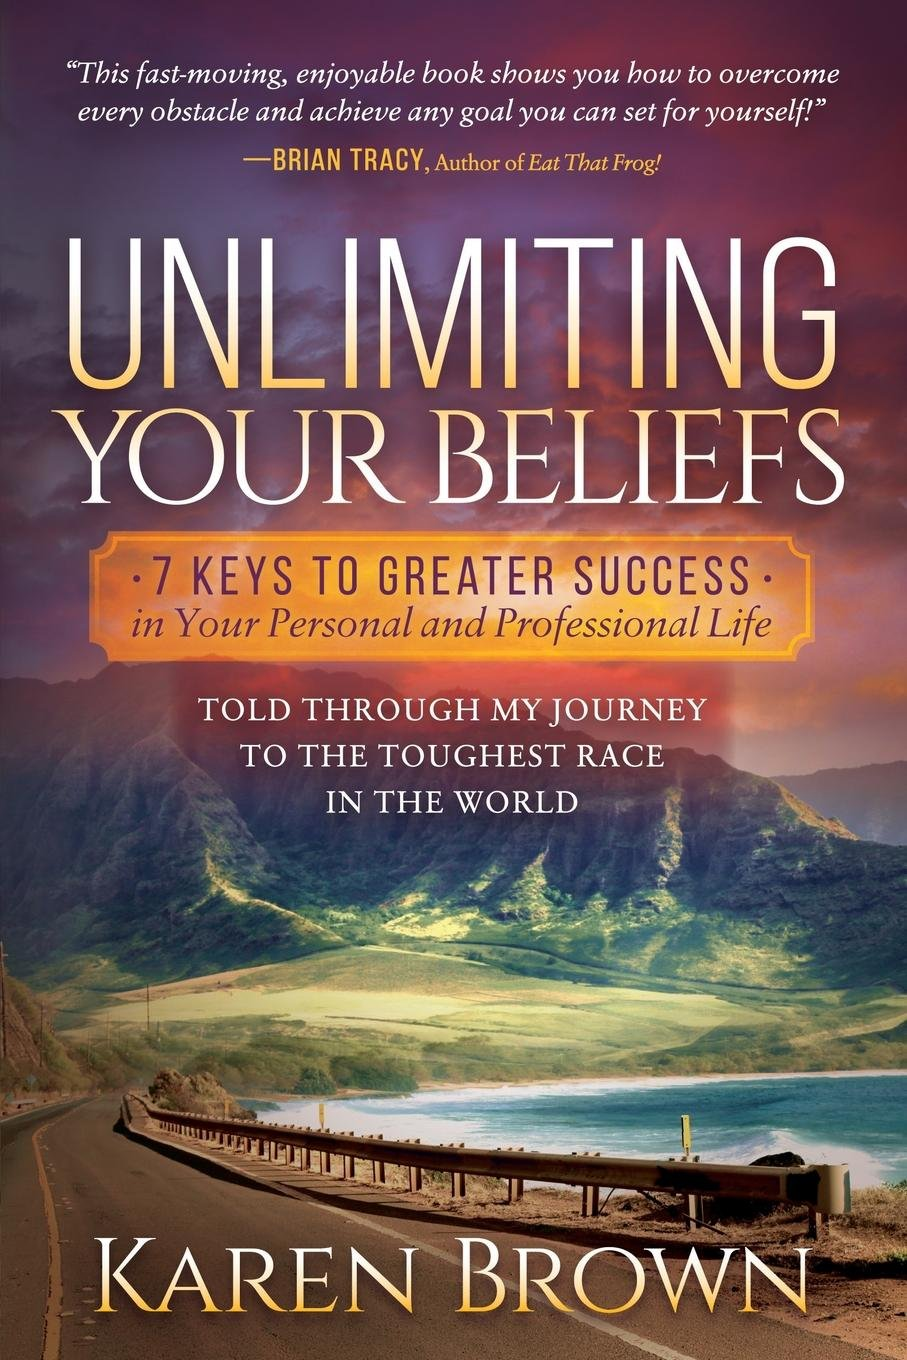 Unlimiting Your Beliefs: 7 Keys to Greater Success in Your Personal and Professional Life; Told Through My Journey to the Toughest Race in the World pdf epub